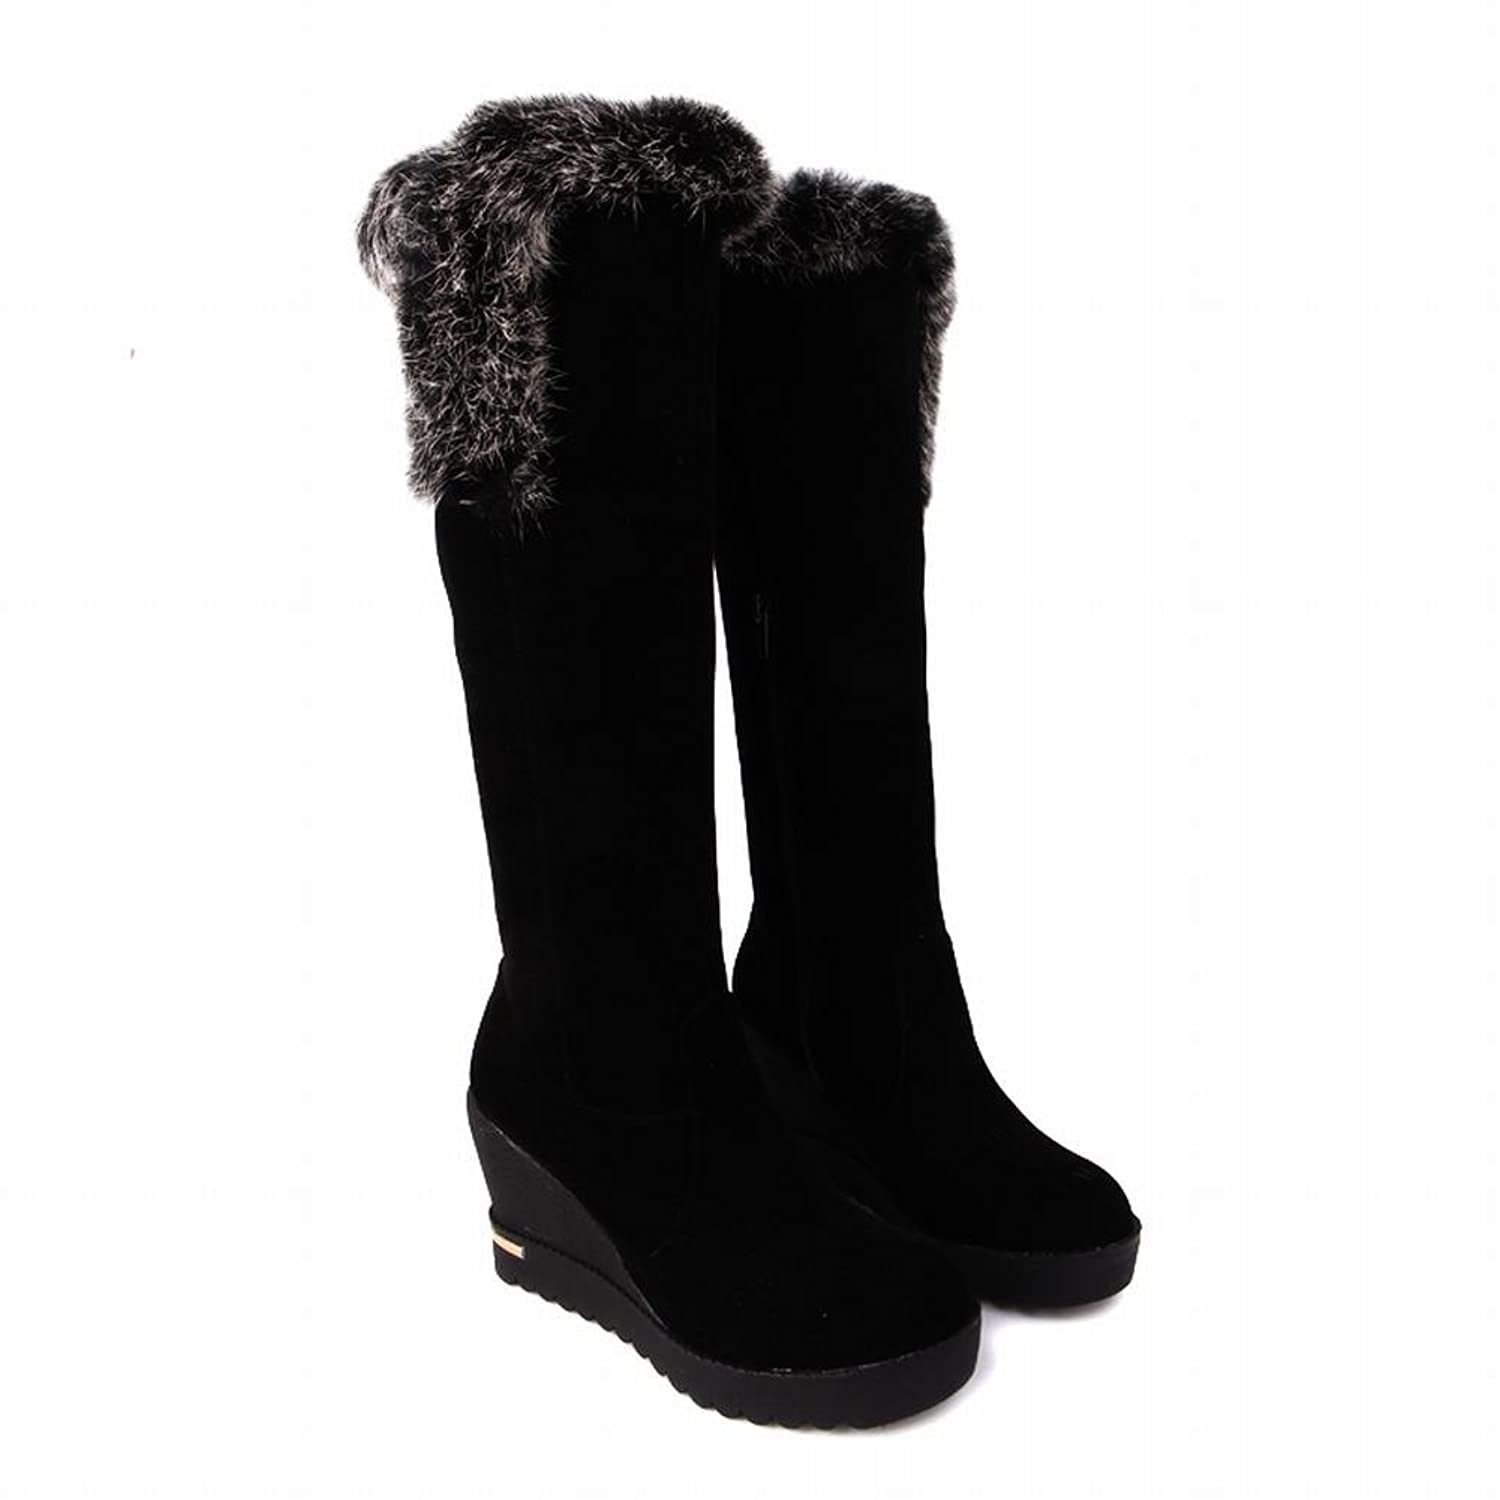 Charm Foot Fashion Cony Hair Platform Wedge Knee High Snow Boots